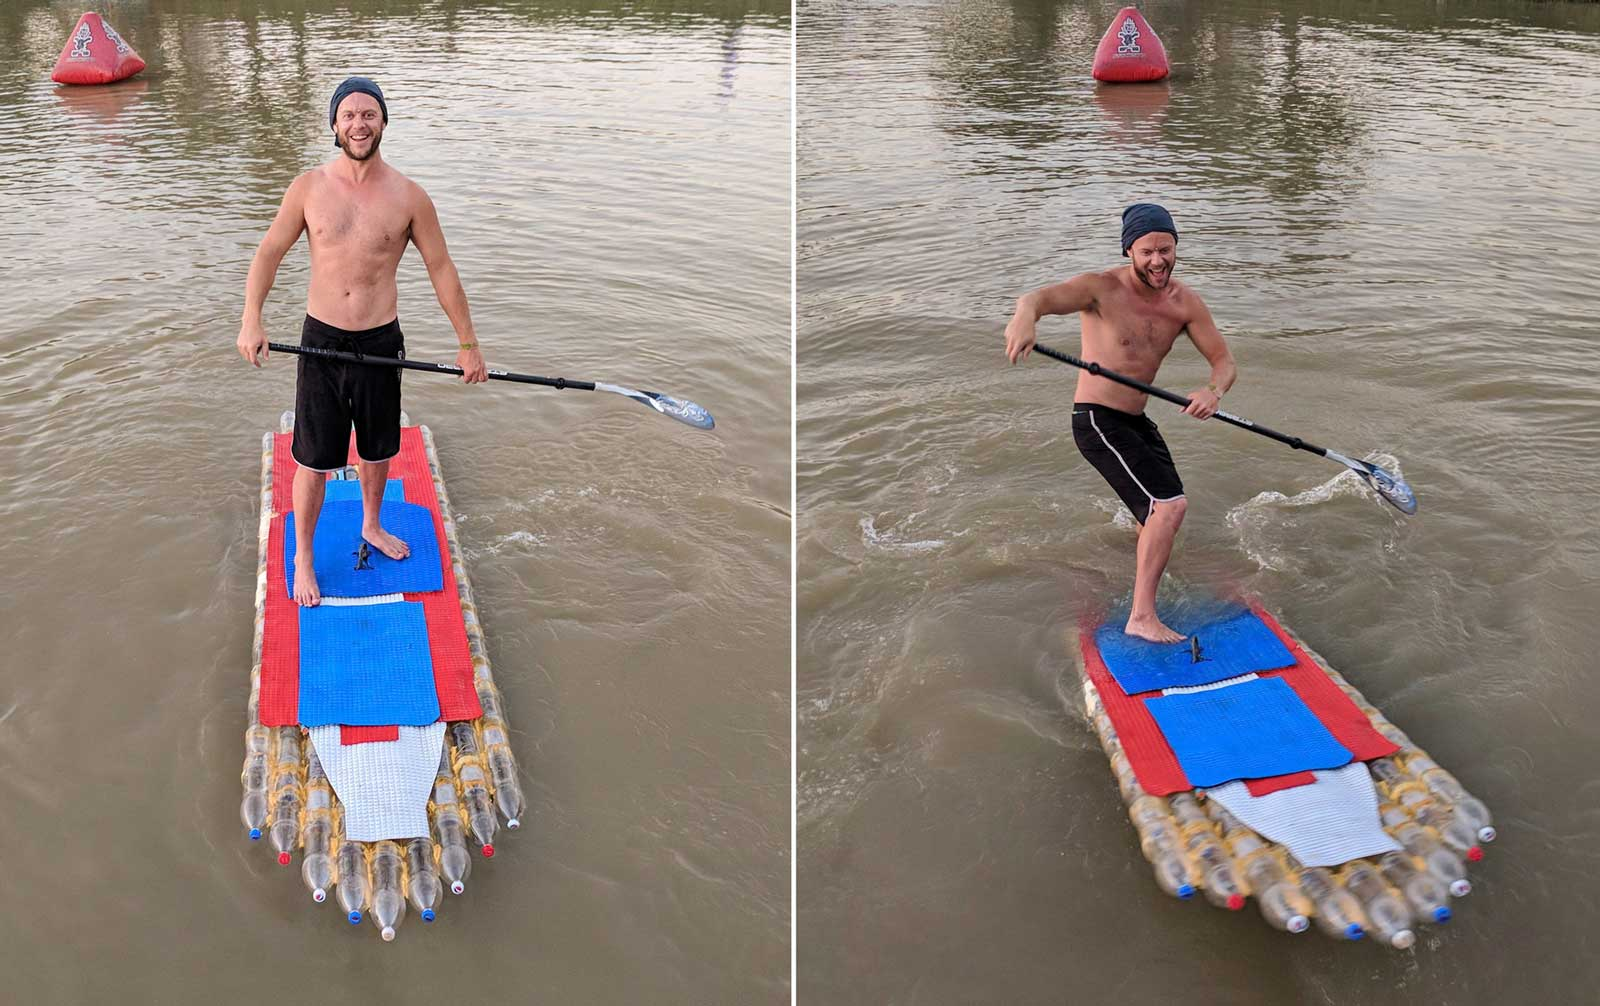 Plastic-bottle-stand-up-paddle-board